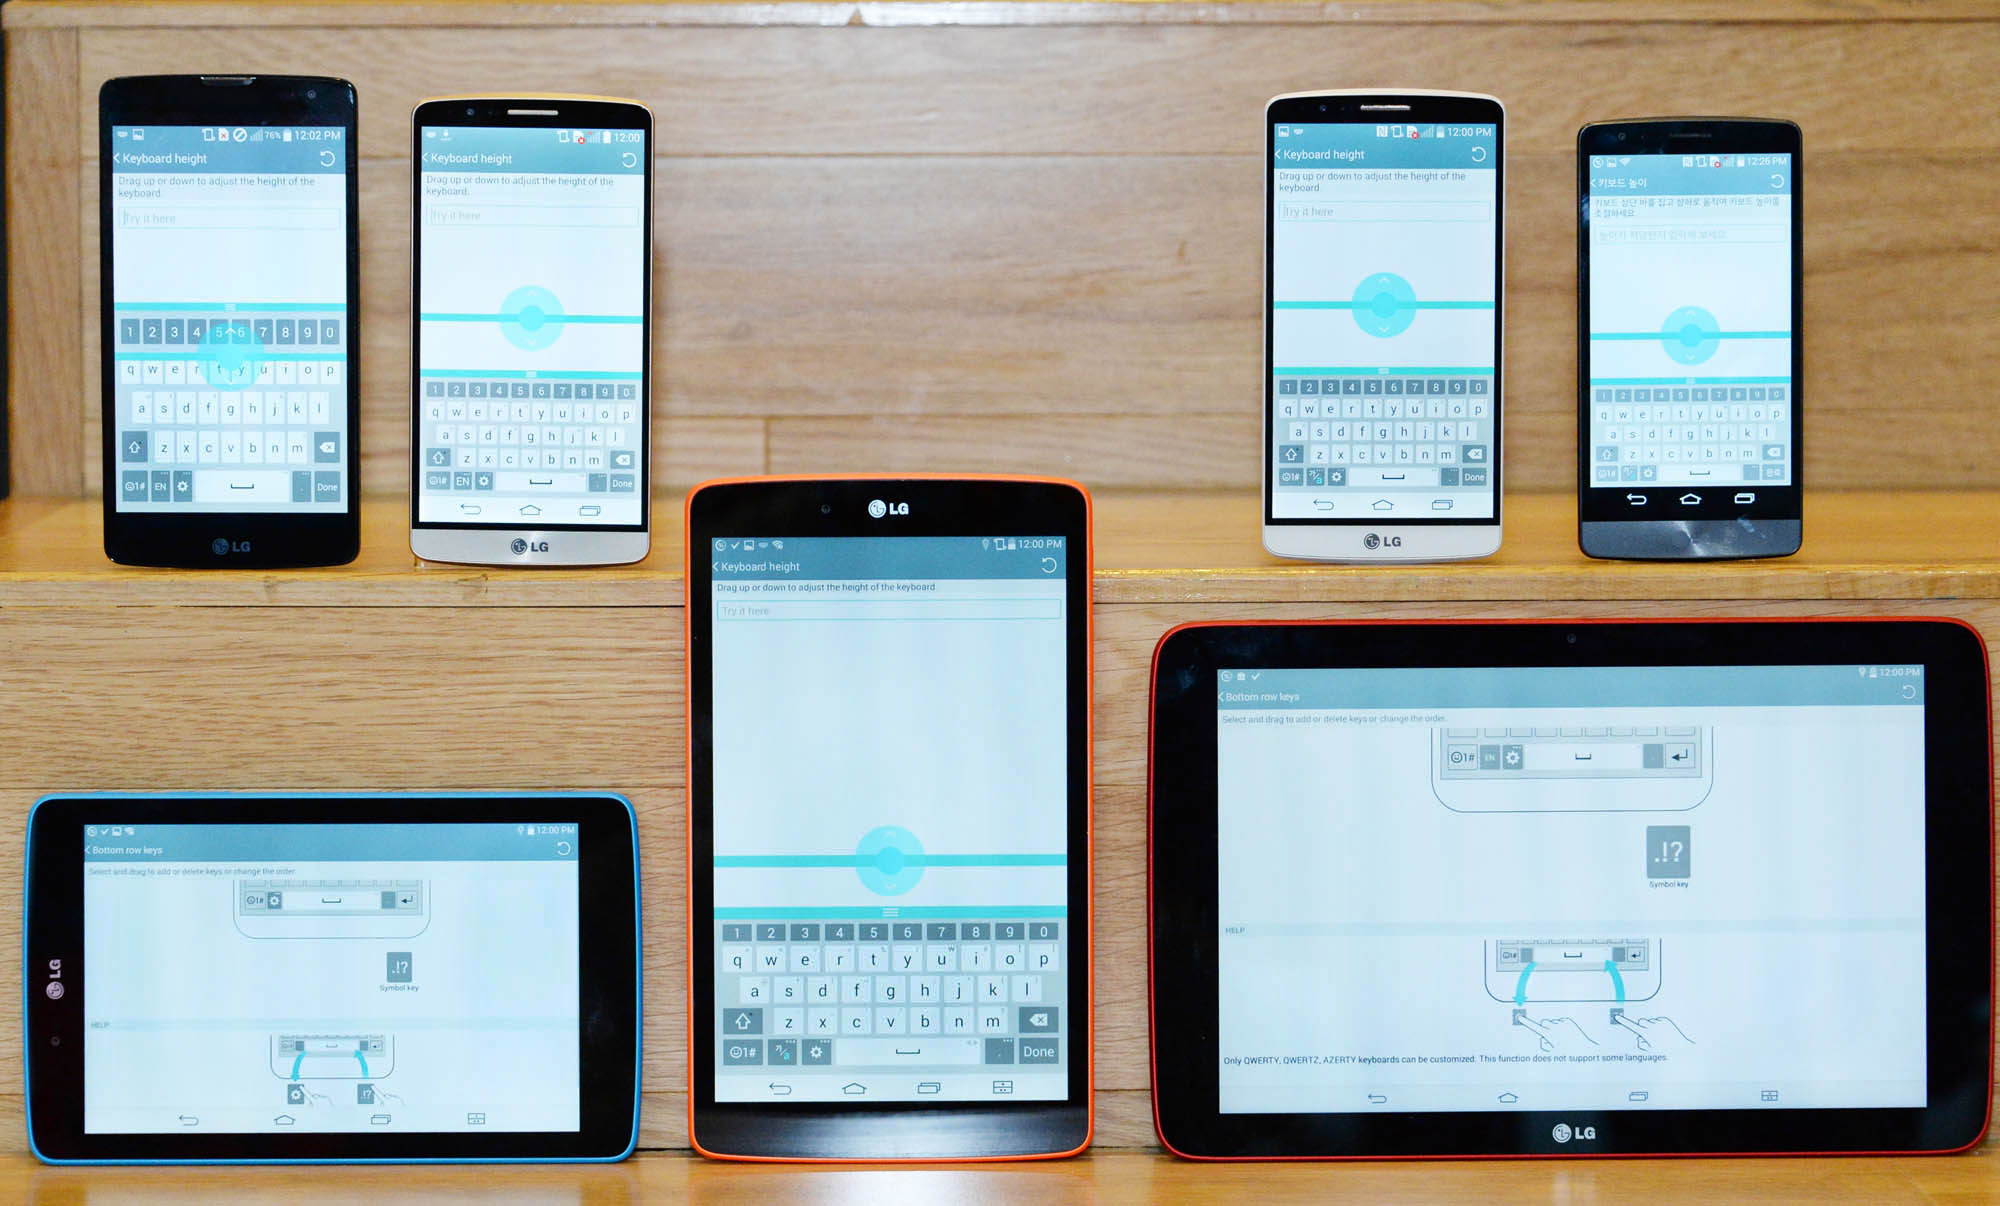 LG Electronics will begin standardizing its proprietary UX features across most of the company's mid- to entry-level smartphones and tablets launched in the second half of this year. (image credit: LG Electronics)